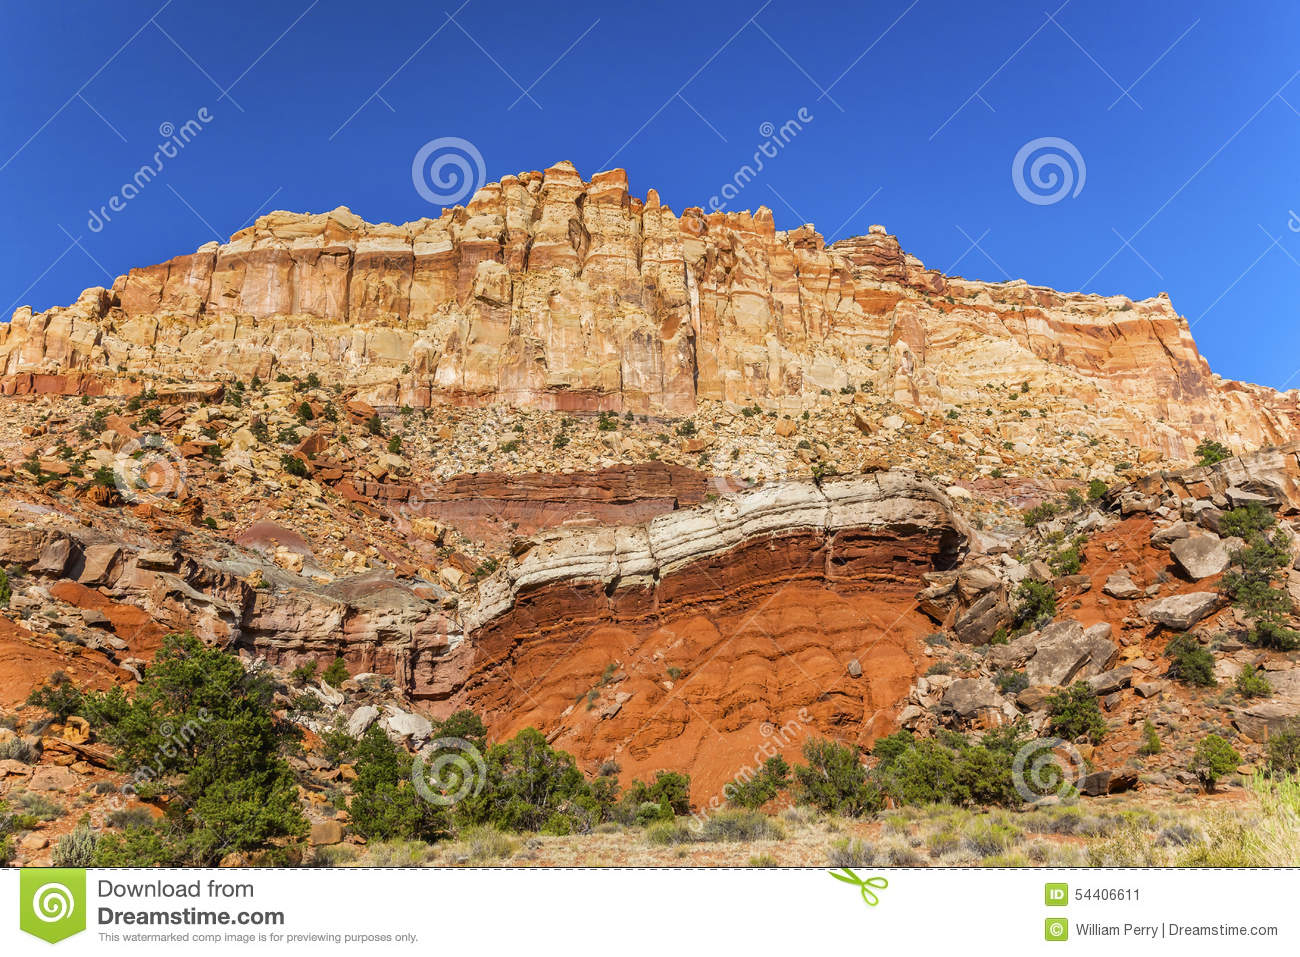 Sandstone Mountain Capitol Reef National Park Torrey Utah Stock.